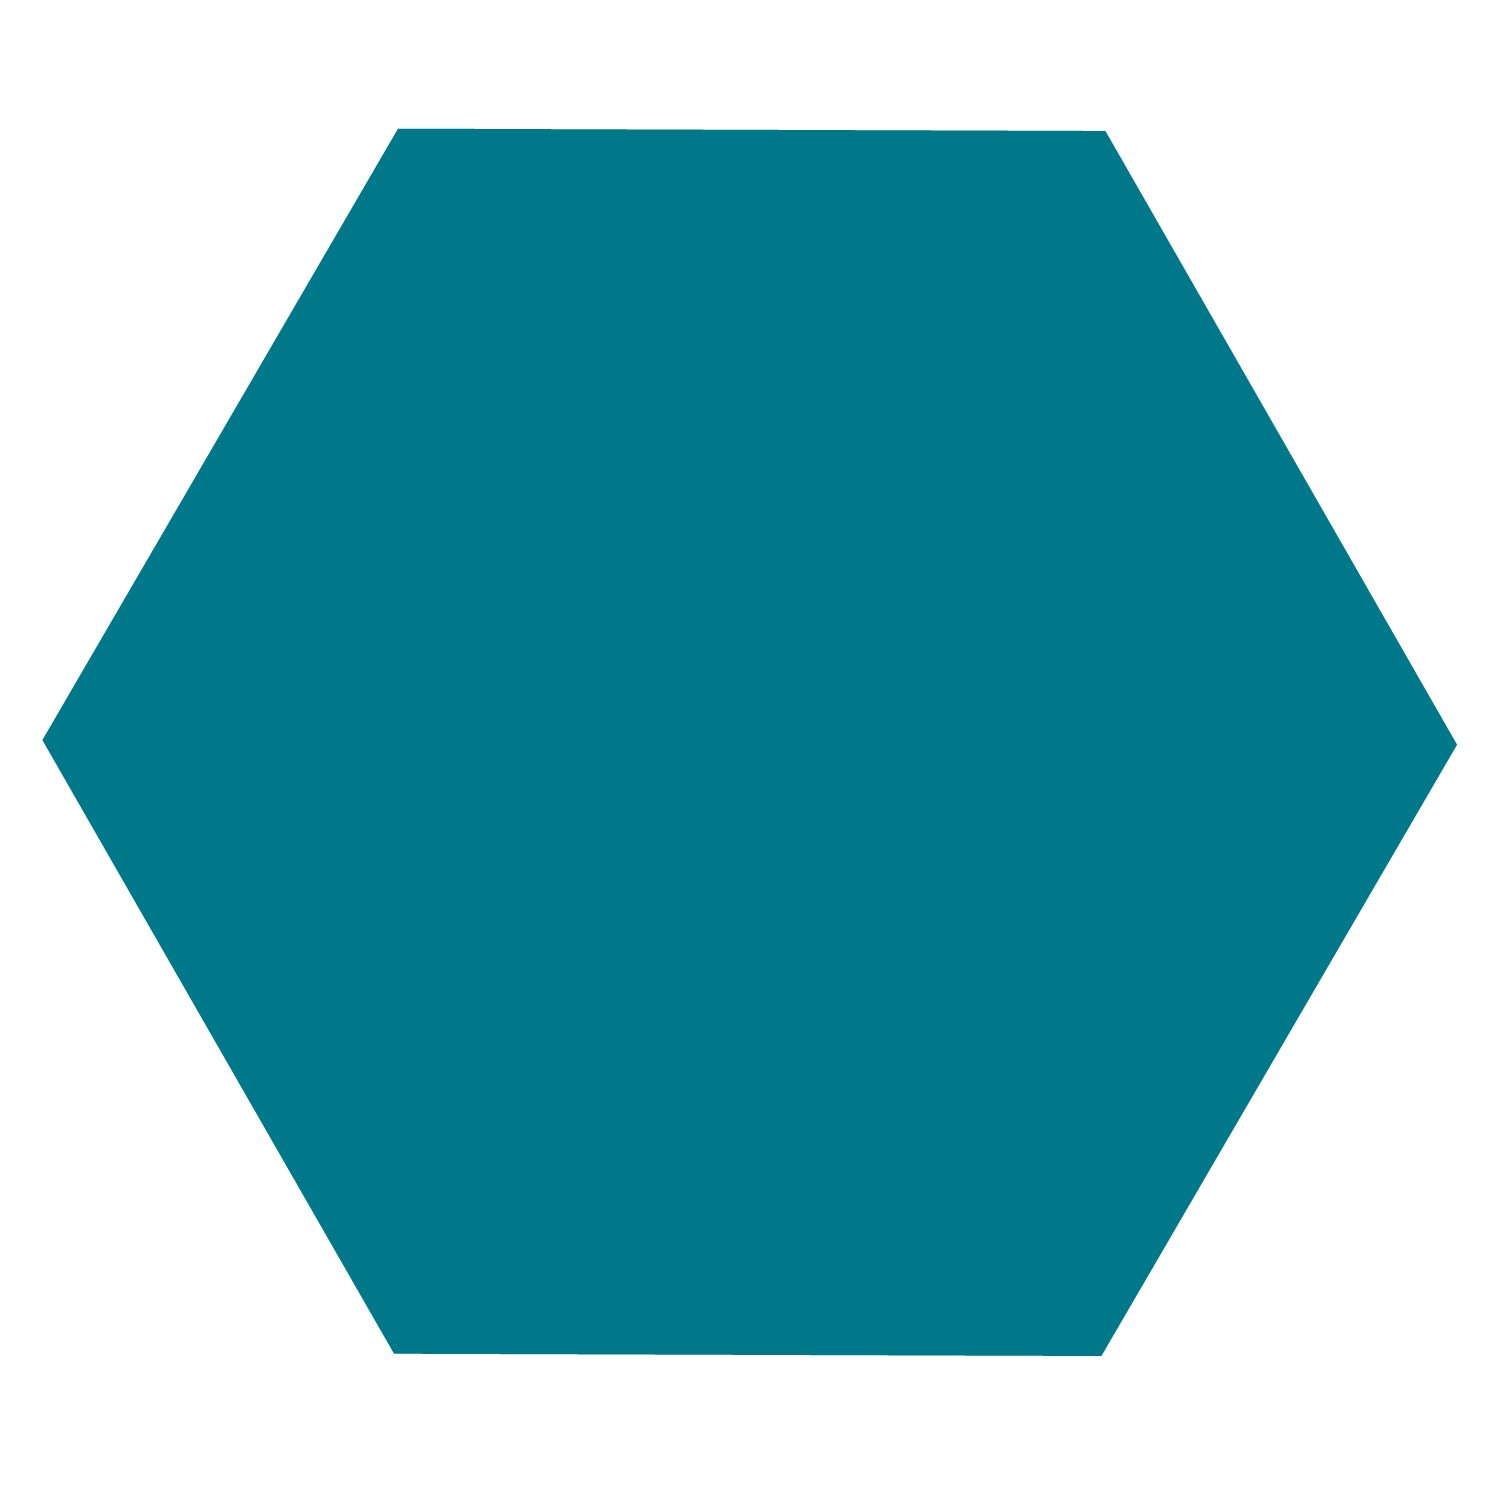 Free Hexagon, Download Free Clip Art, Free Clip Art on Clipart Library.